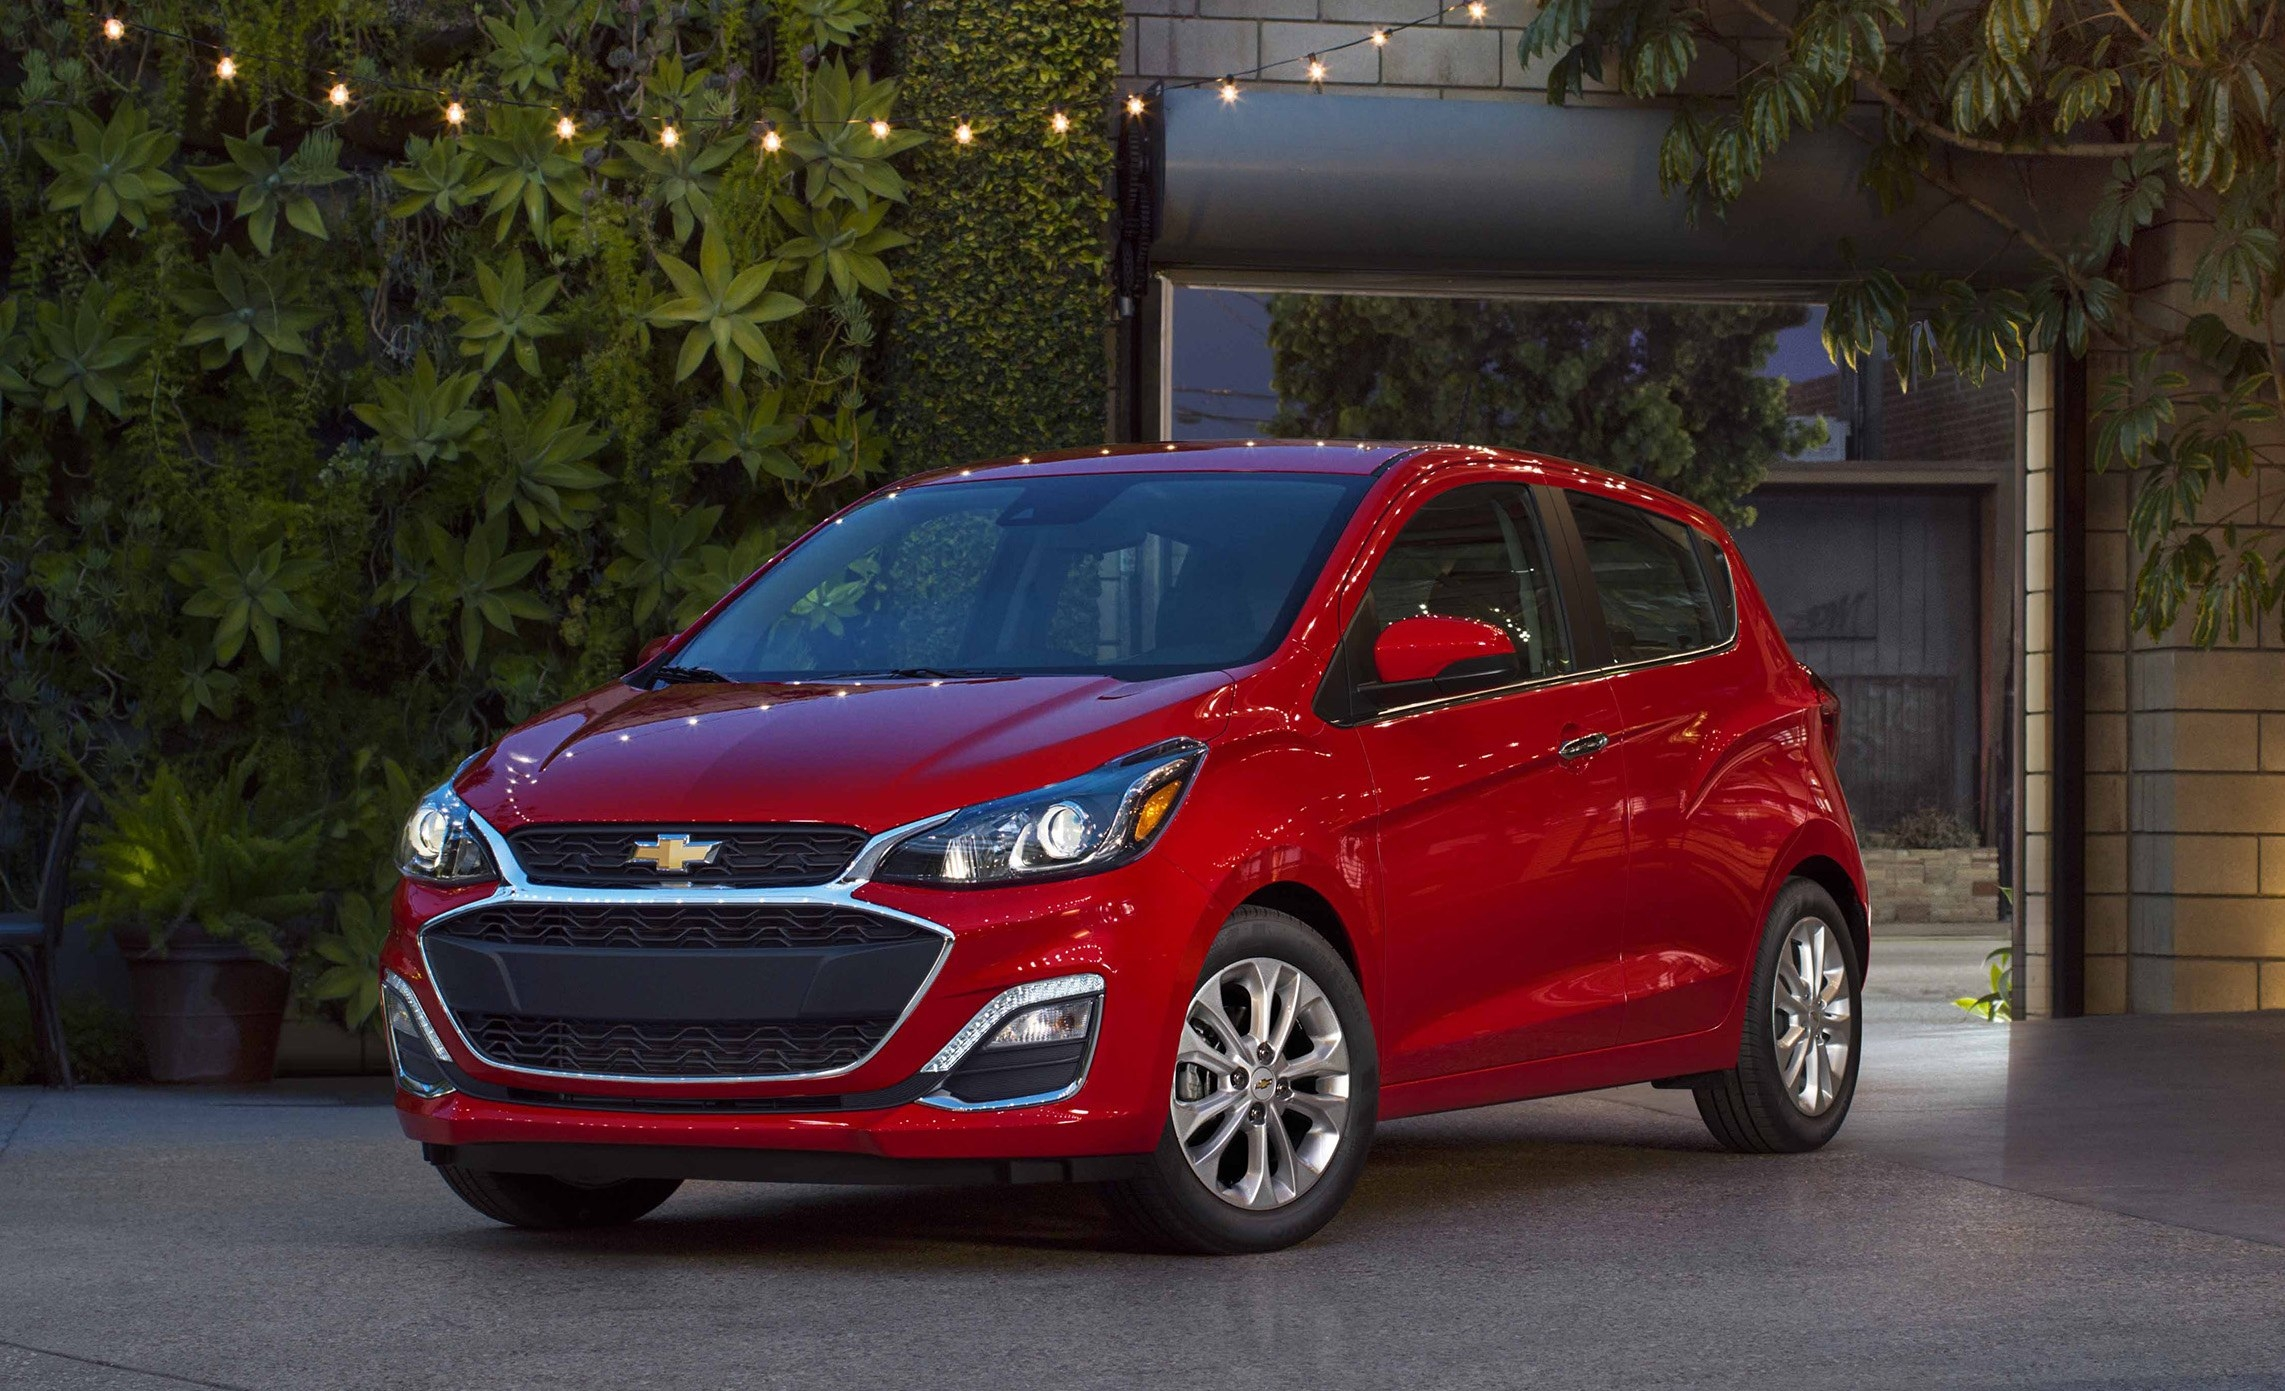 84 All New 2020 Chevy Sonic Ss Ev Rs Release Date and Concept